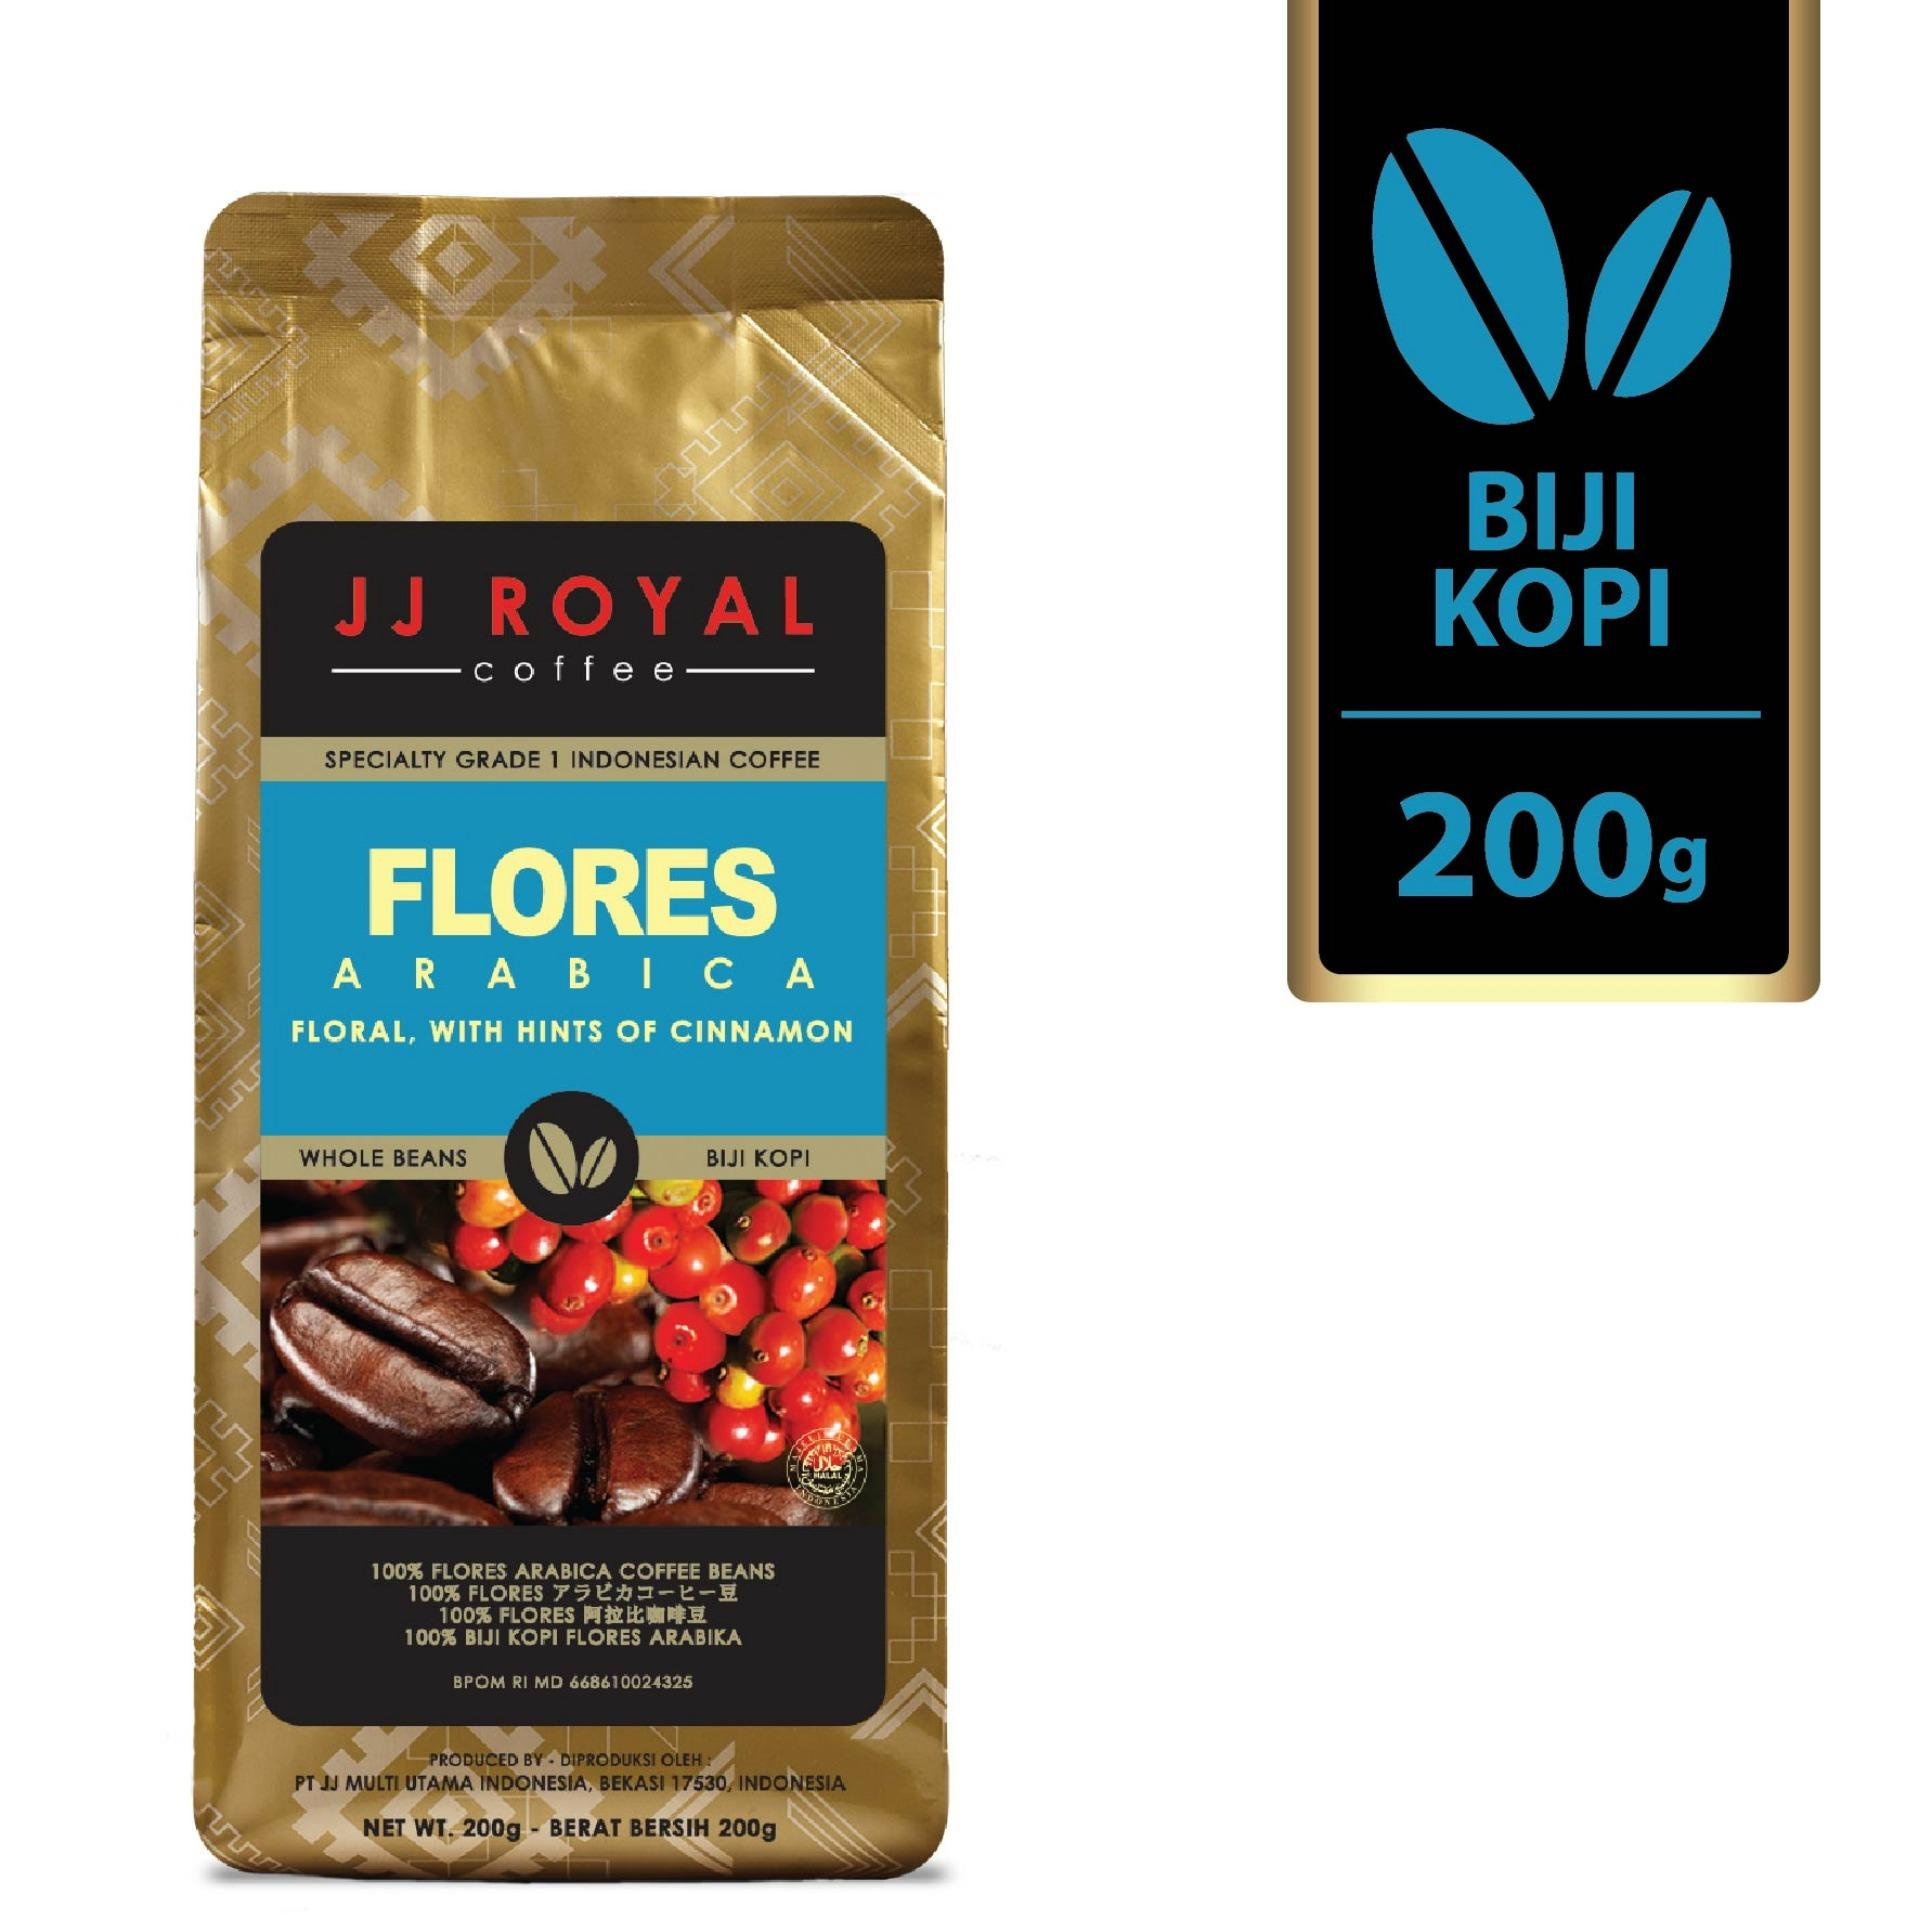 Harga Jj Royal Coffee Flores Arabica Beans Bag 200 Gr Yang Murah